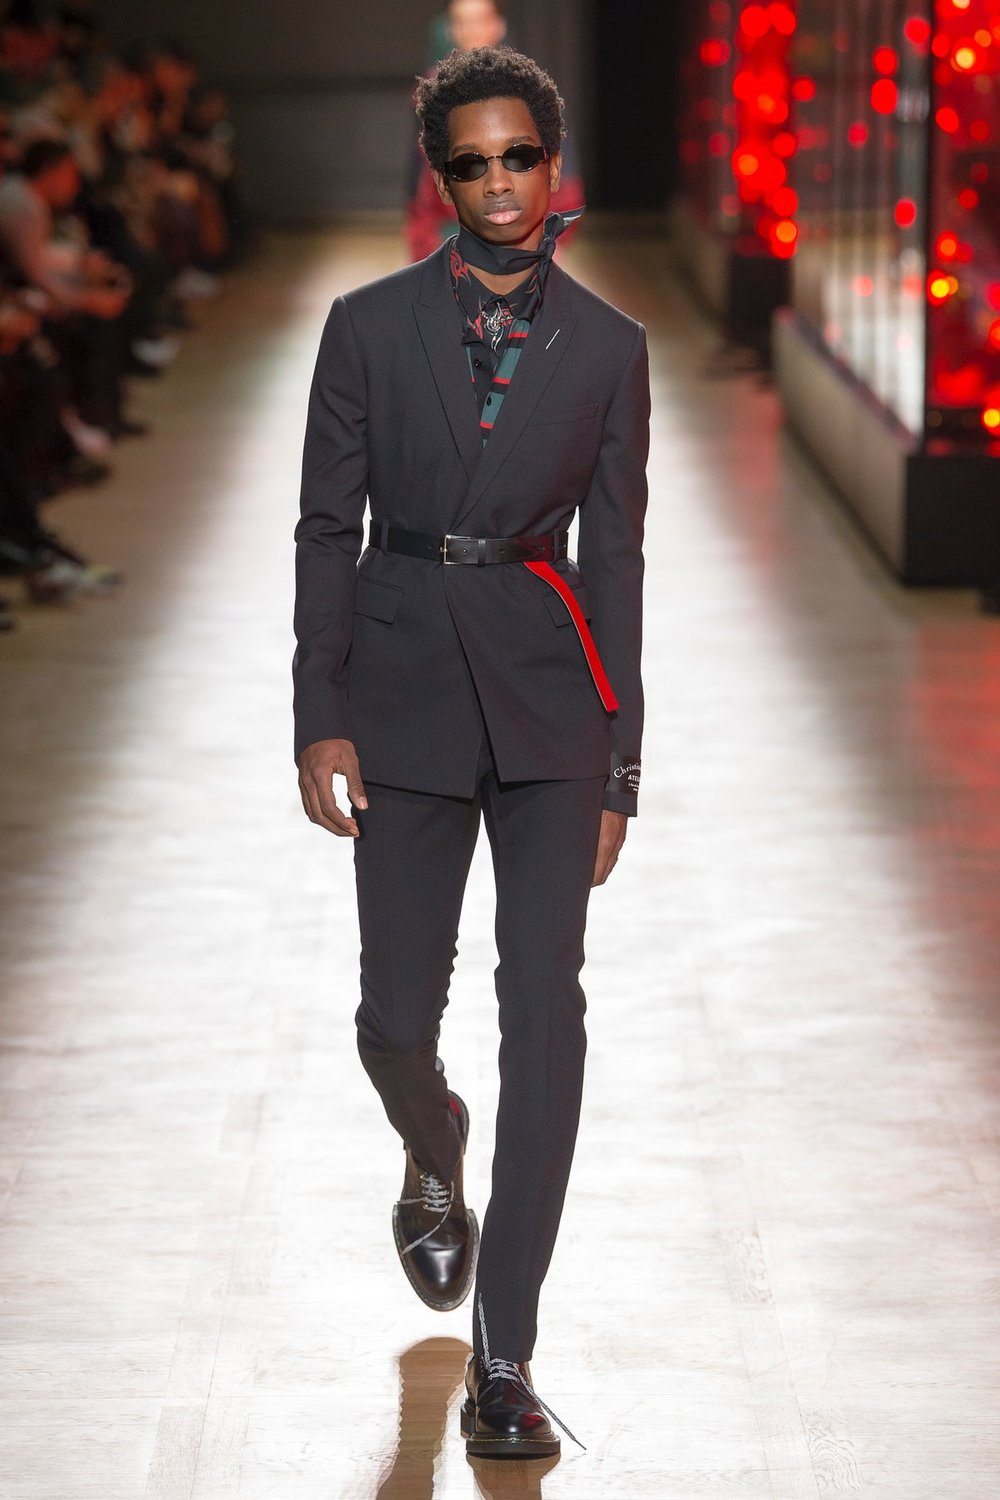 dior_homme_look_23_menswear_autumn_2018.jpeg